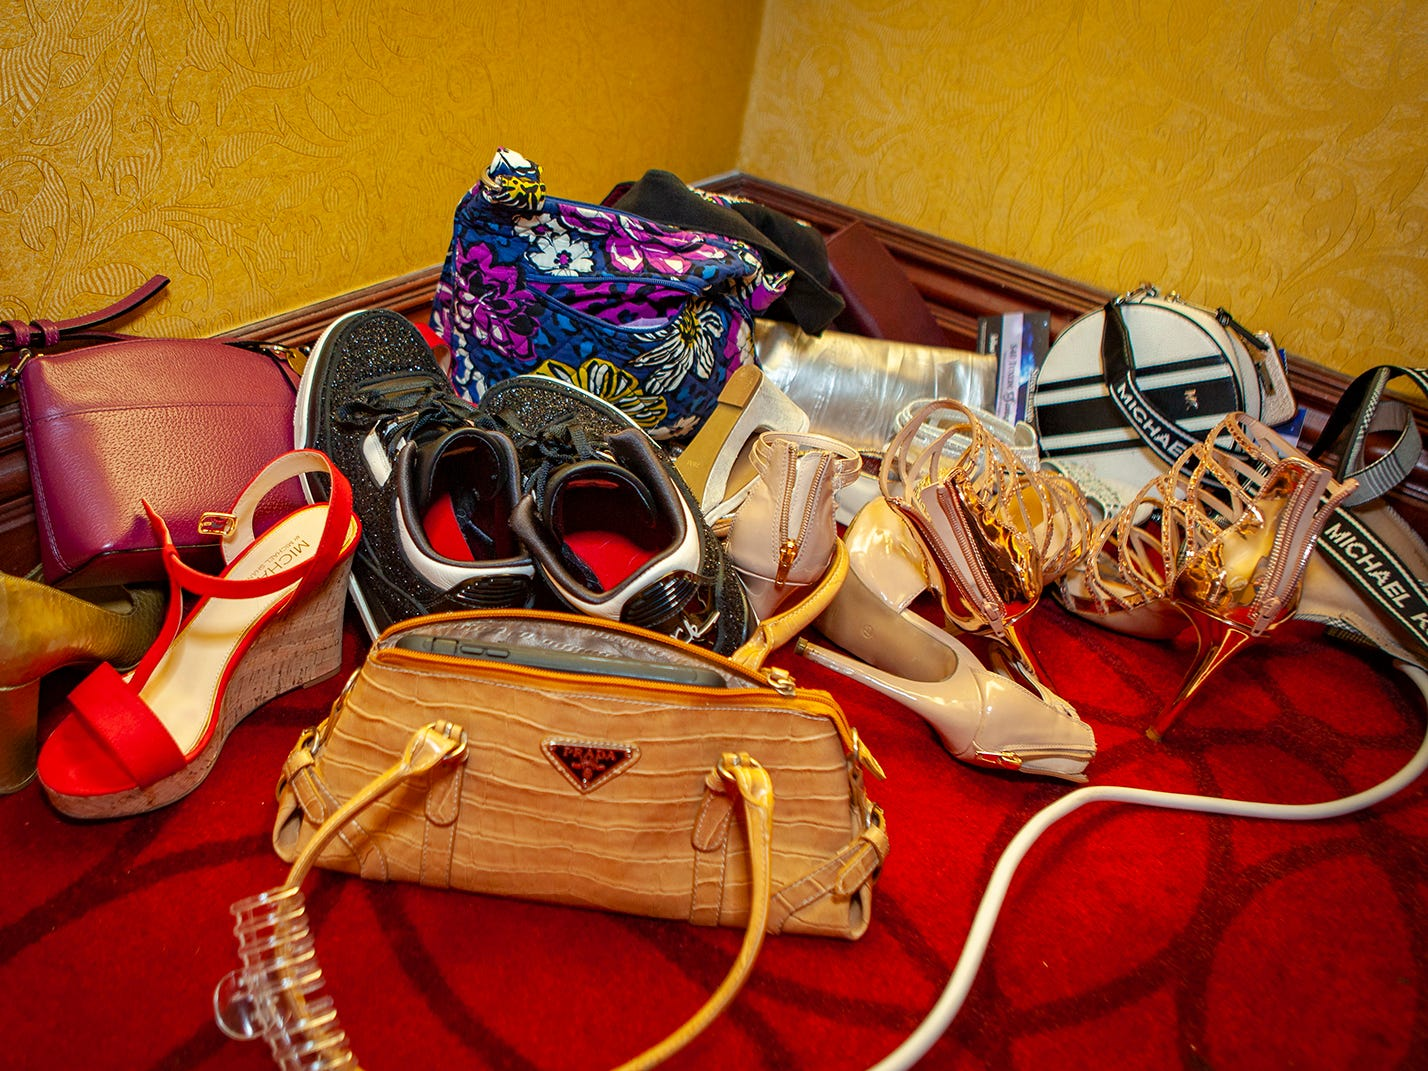 Piles of shoes and purses stack up in a corner at Central Magnet School's 2019 prom Saturday, April 6 at Embassy Suites in Murfreesboro.